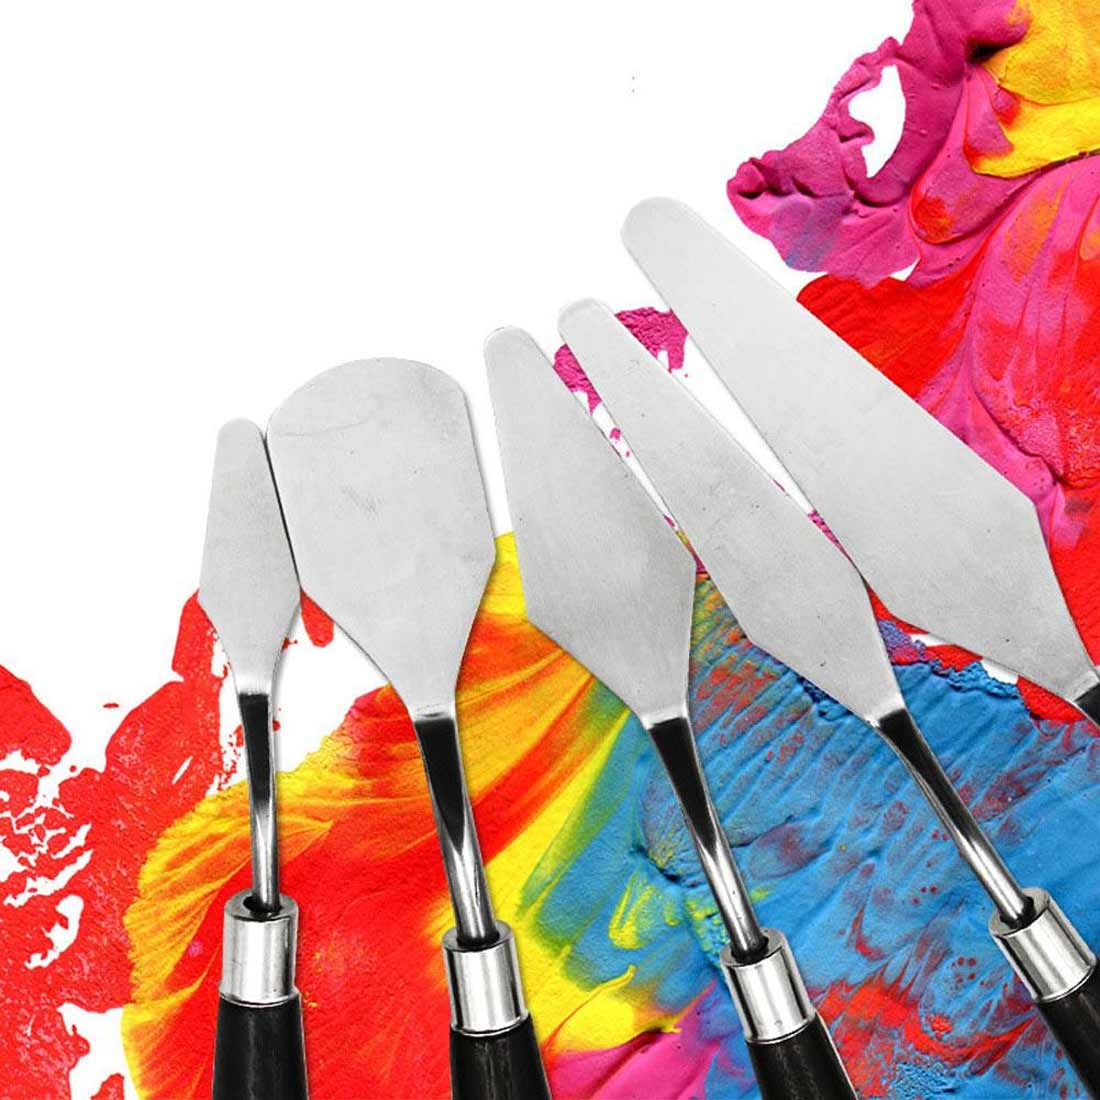 5pcs/set Artist Painting Palette Knife for Thick Oil Painting Spatula Stainless Steel Painting Palette Arts Painting Tool Set image